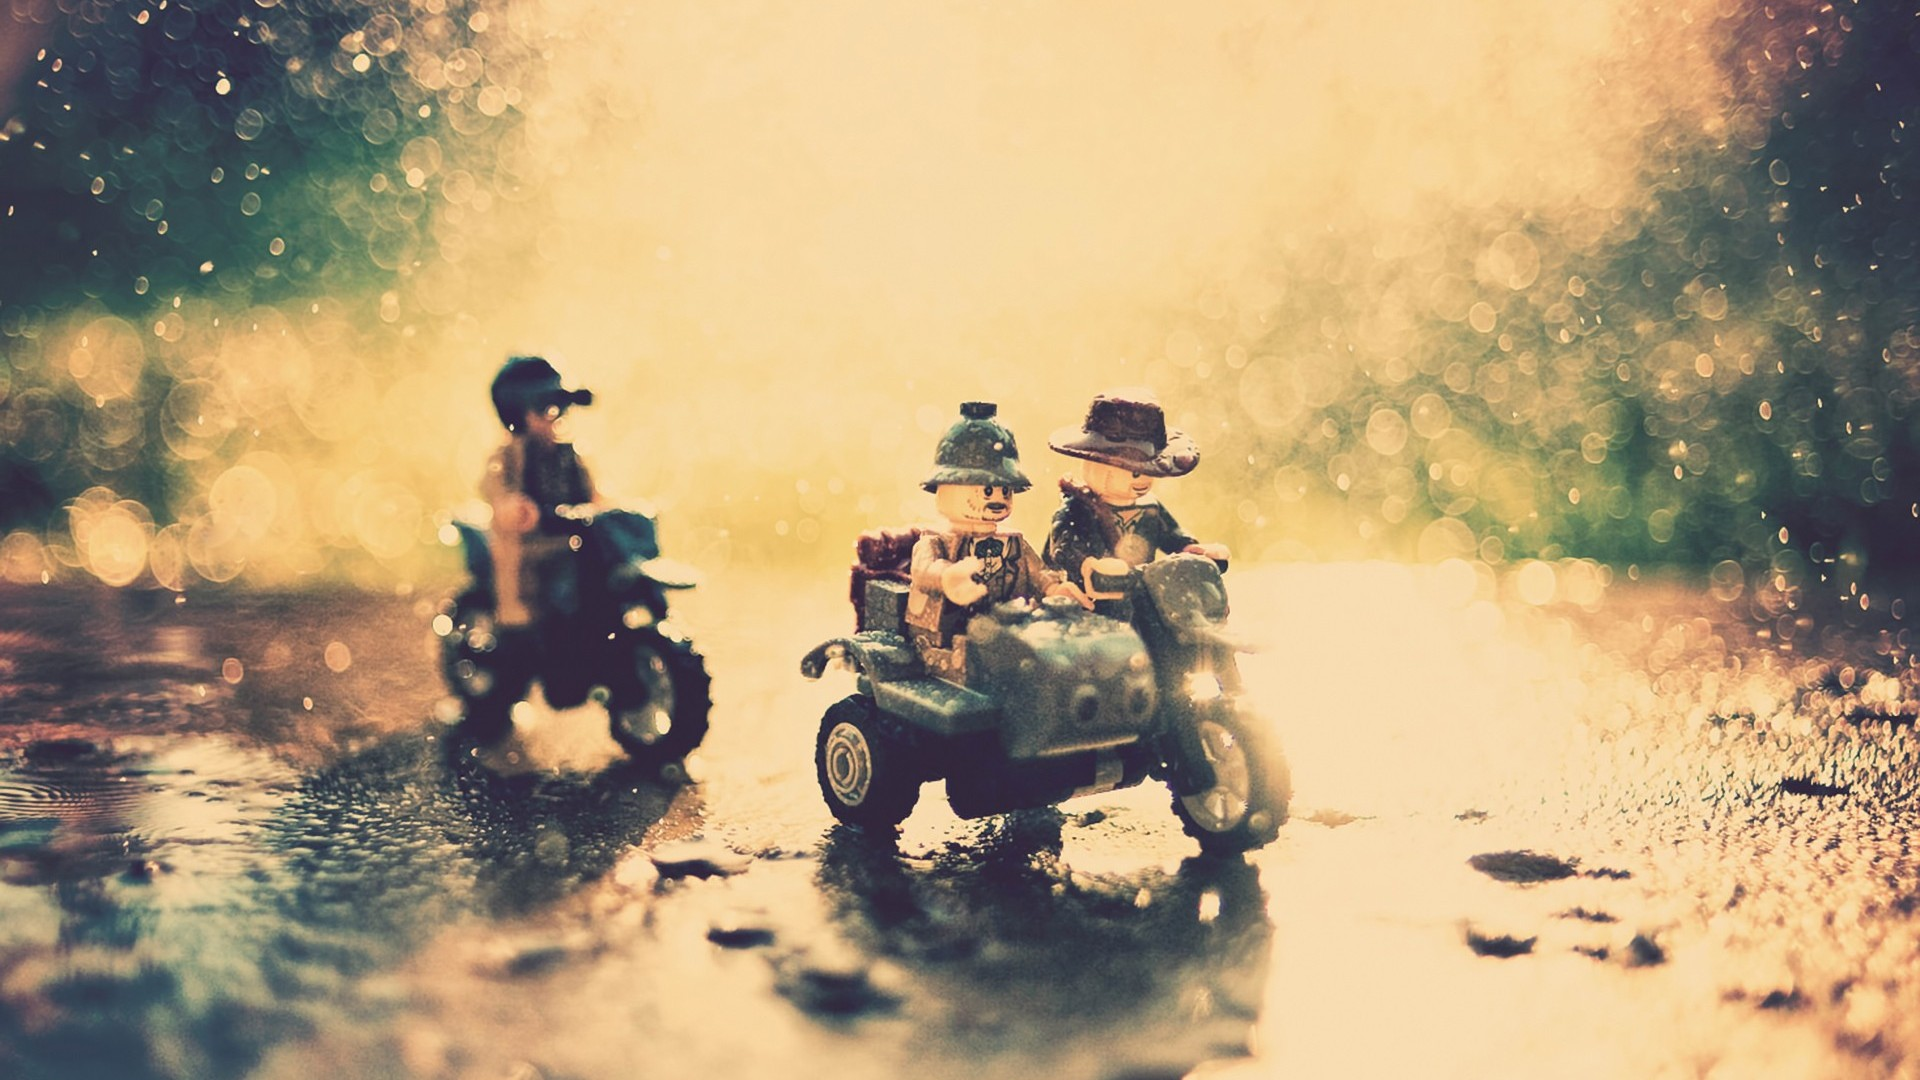 Wallpaper Lego Indiana Jones HD 1920x1080